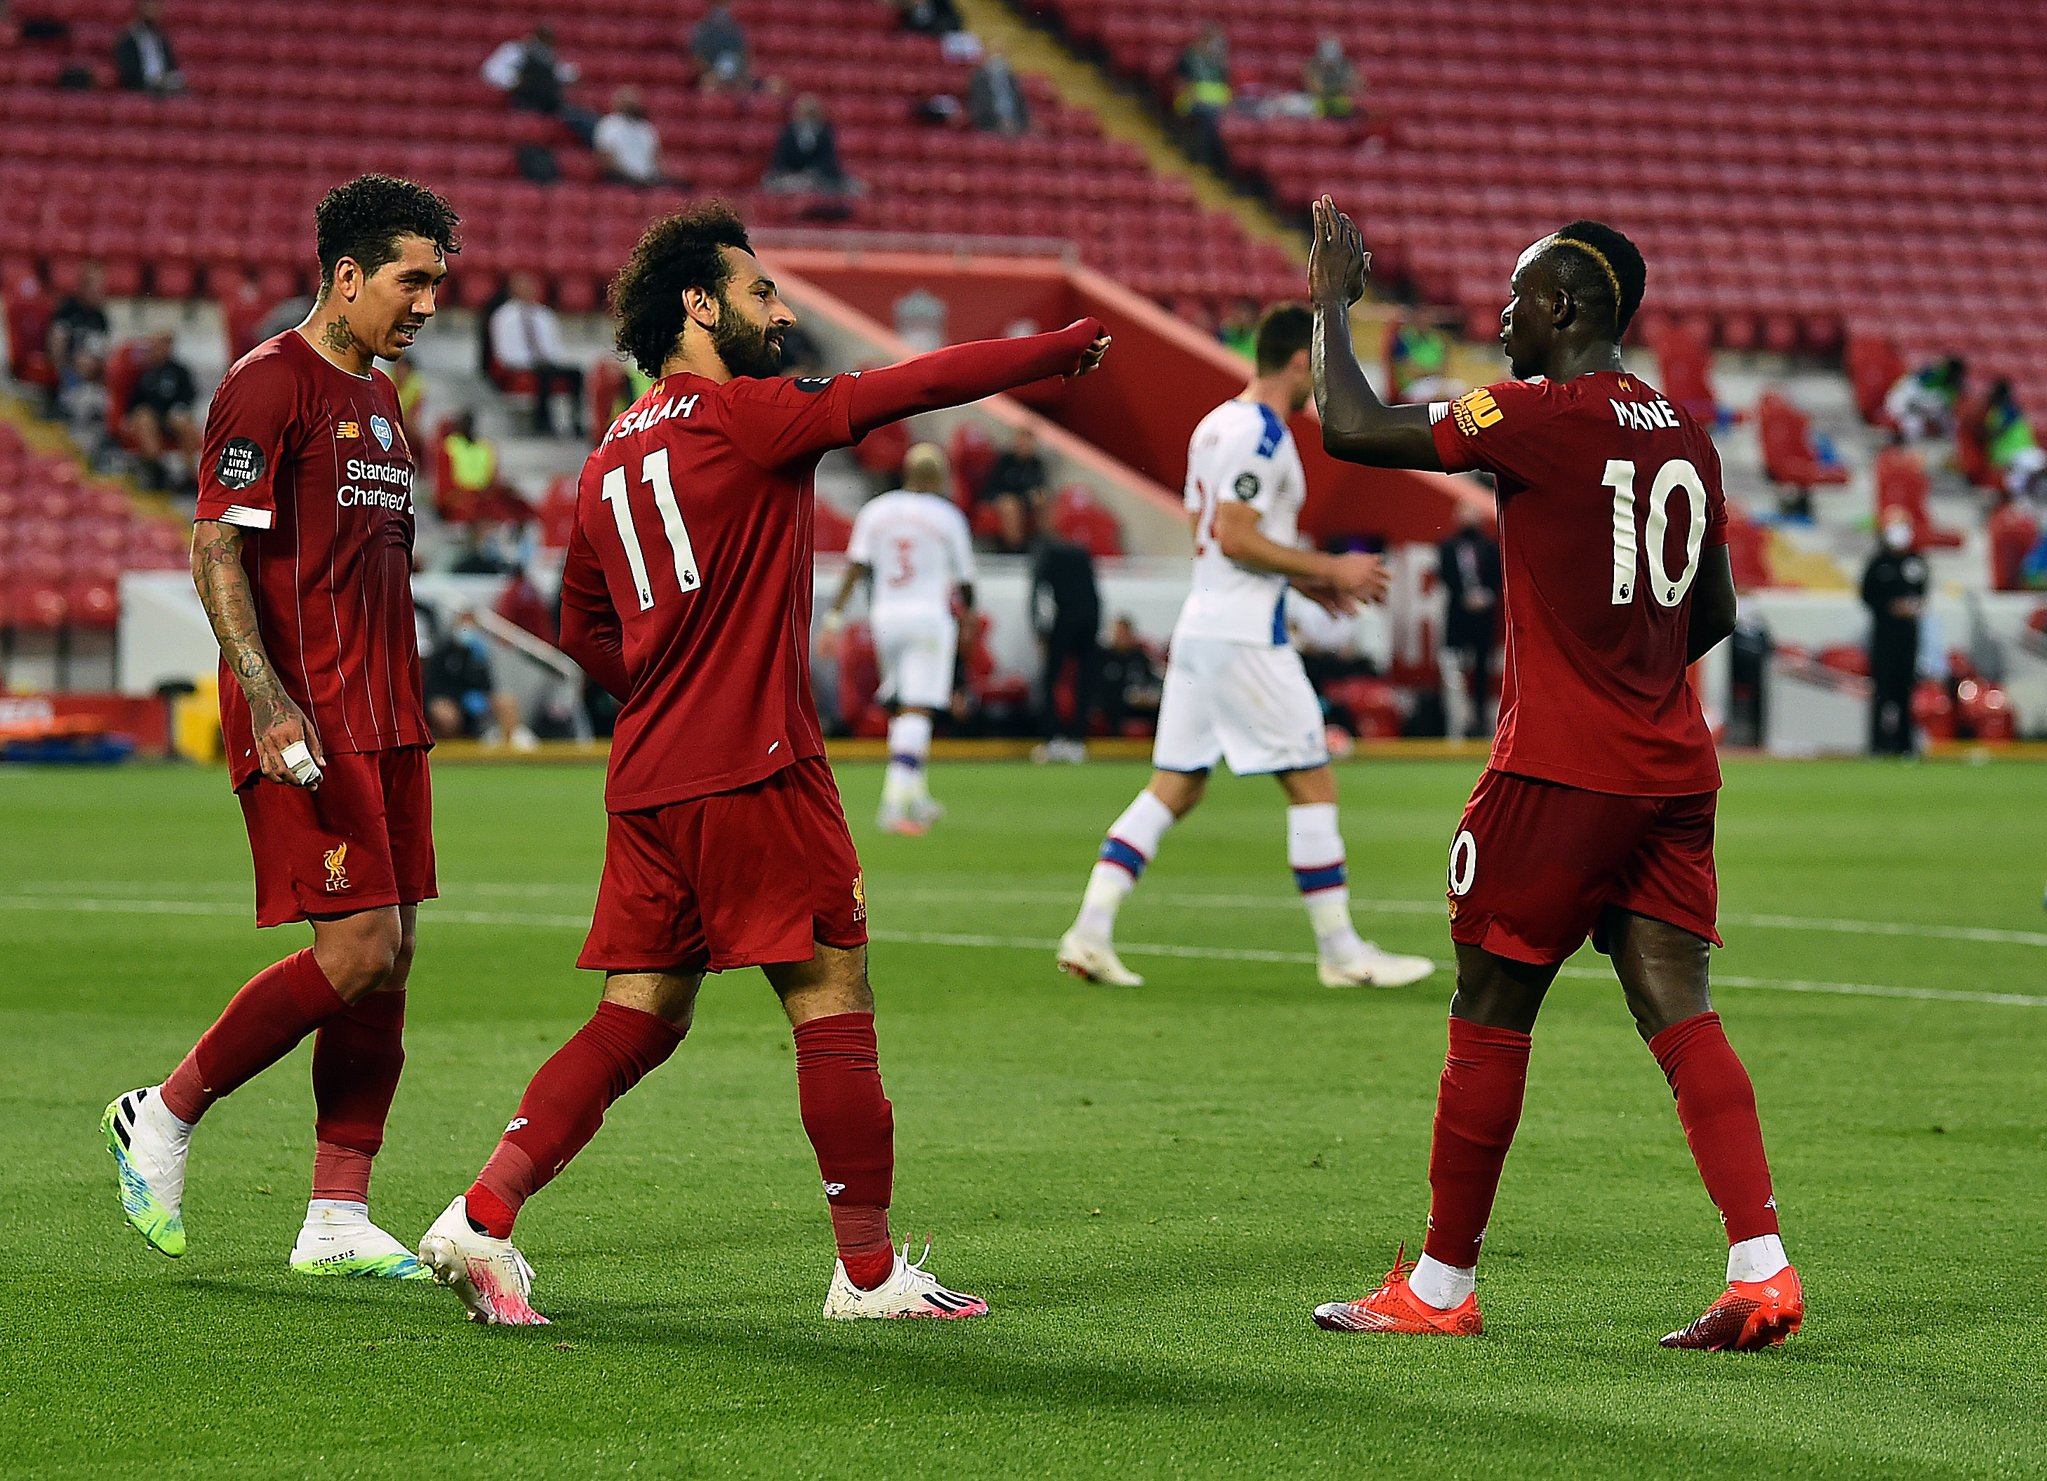 Liverpool Thrash Crystal Palace, Inch Closer To Premier League Title